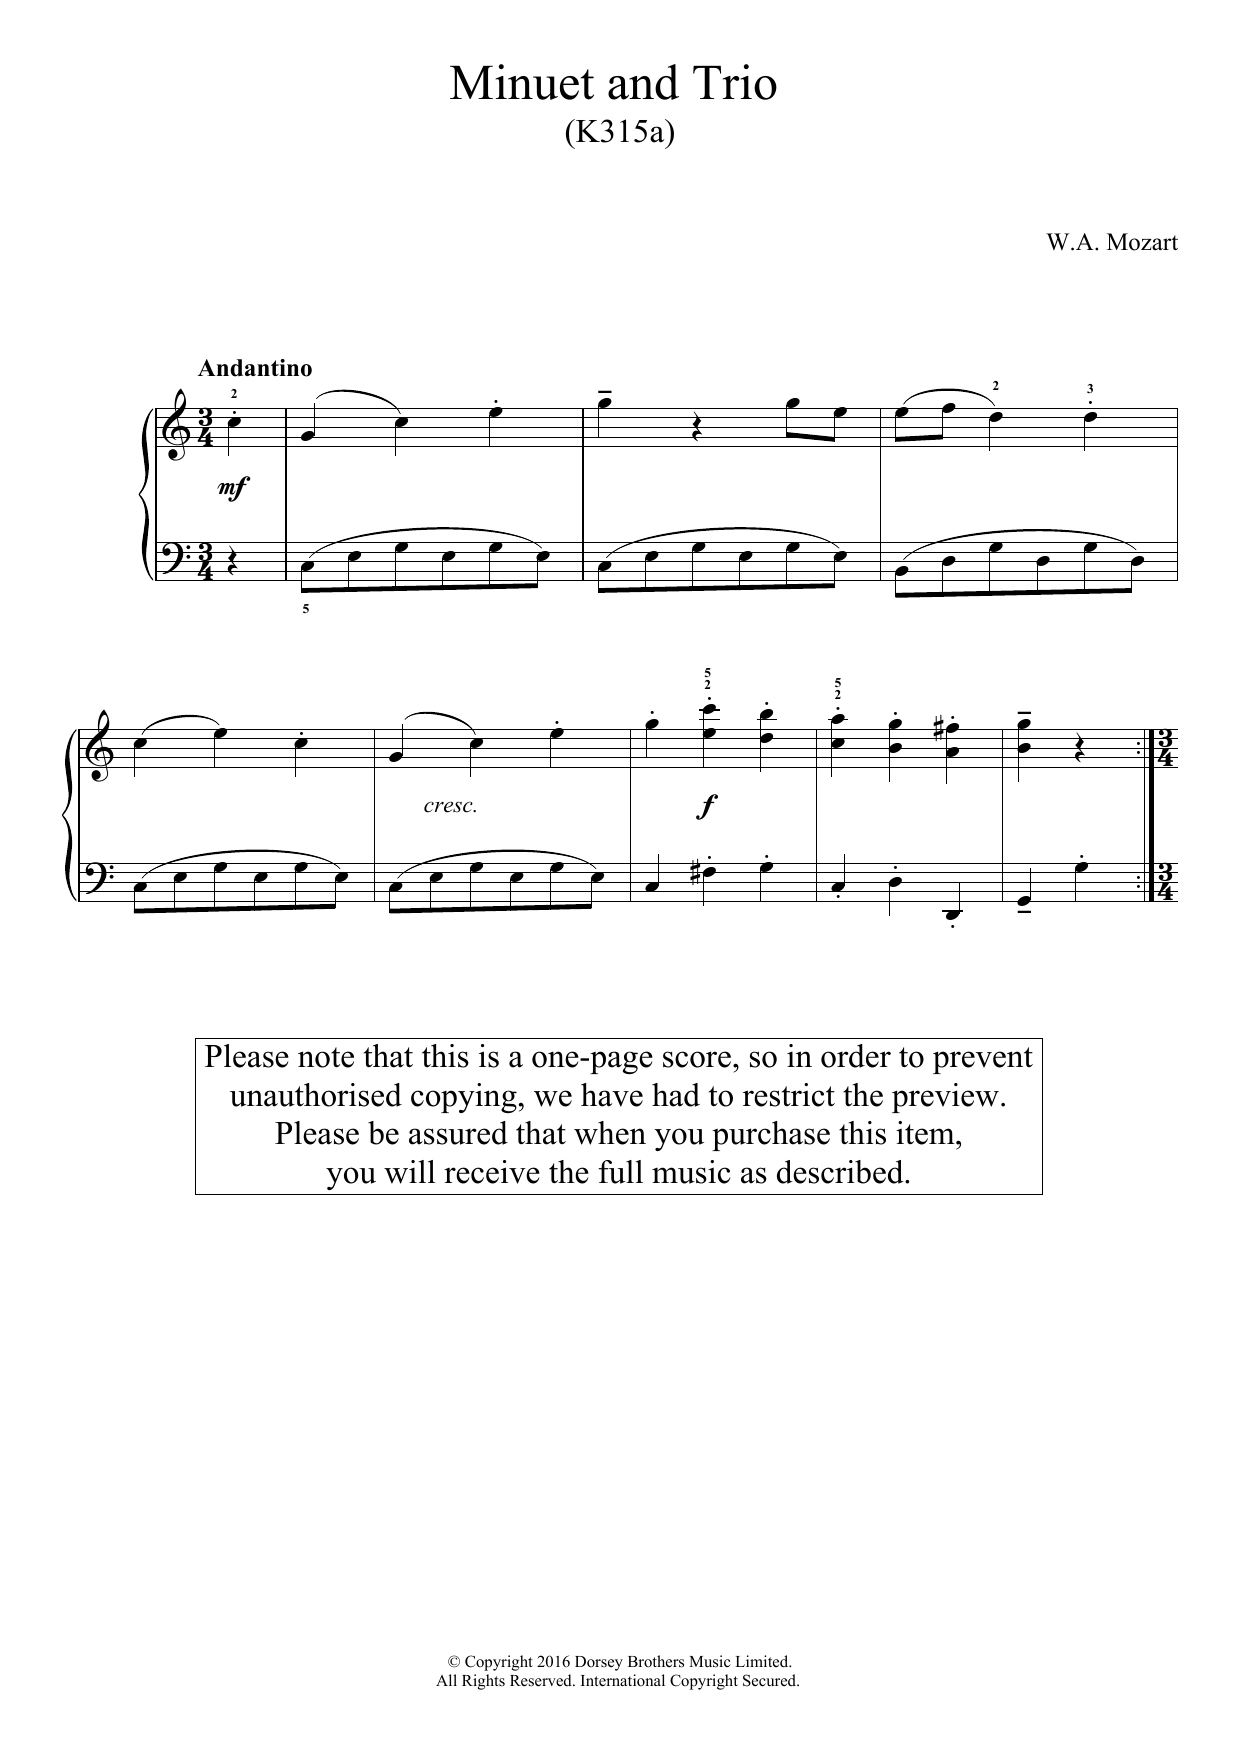 Minuet And Trio K.315a Sheet Music